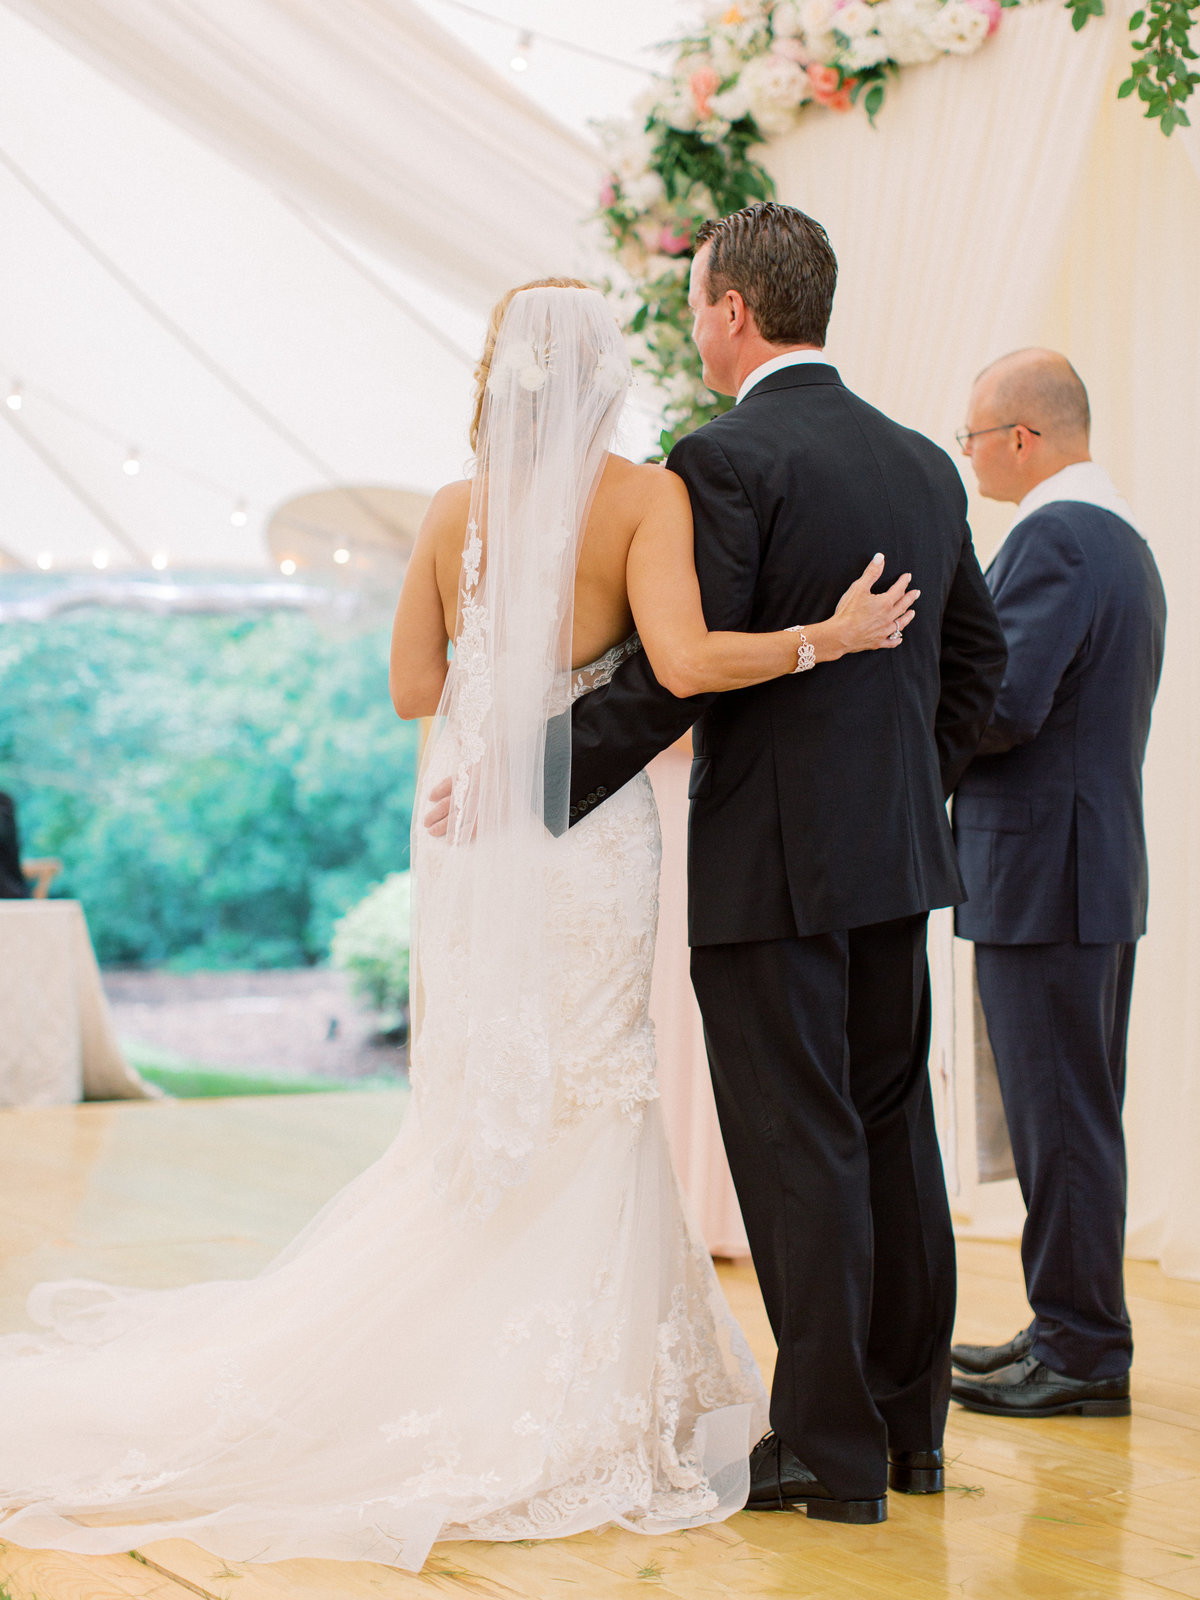 2019-06-08Carrie&MikeWedding-194